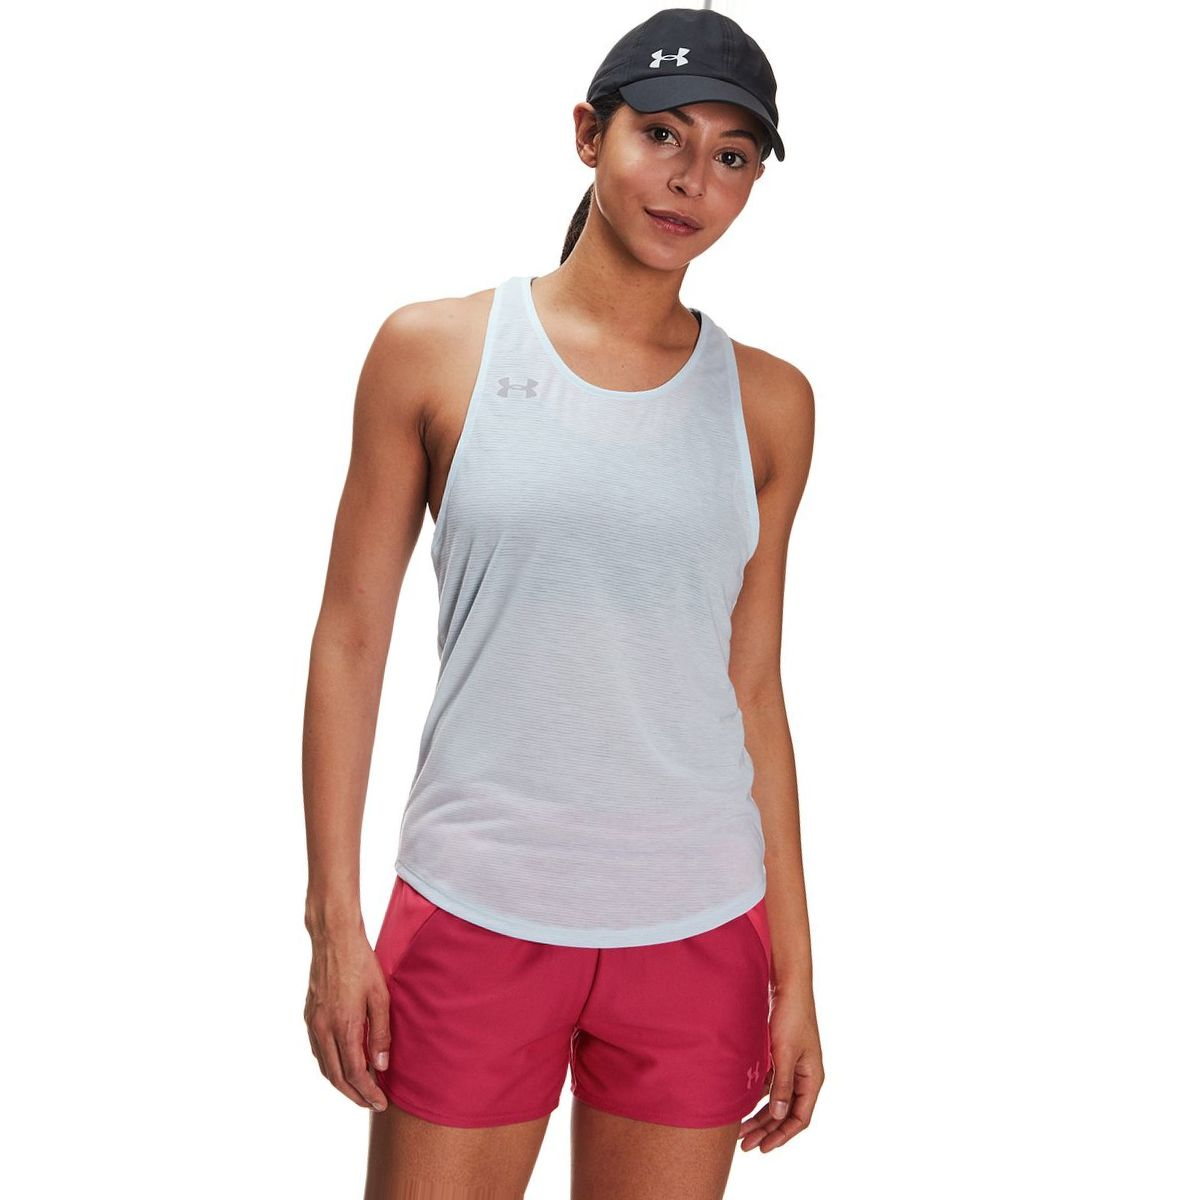 Under Armour Streaker 2.0 Racer Tank Top - Women's